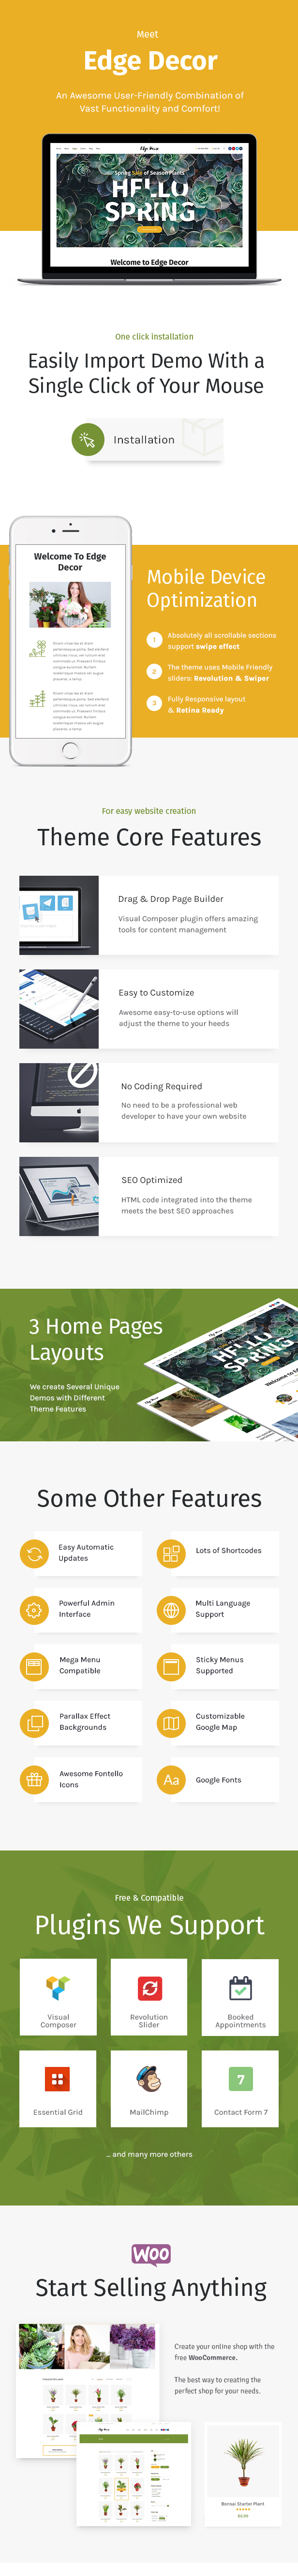 Edge Decor | A Modern Gardening & Landscaping WordPress Theme - 2